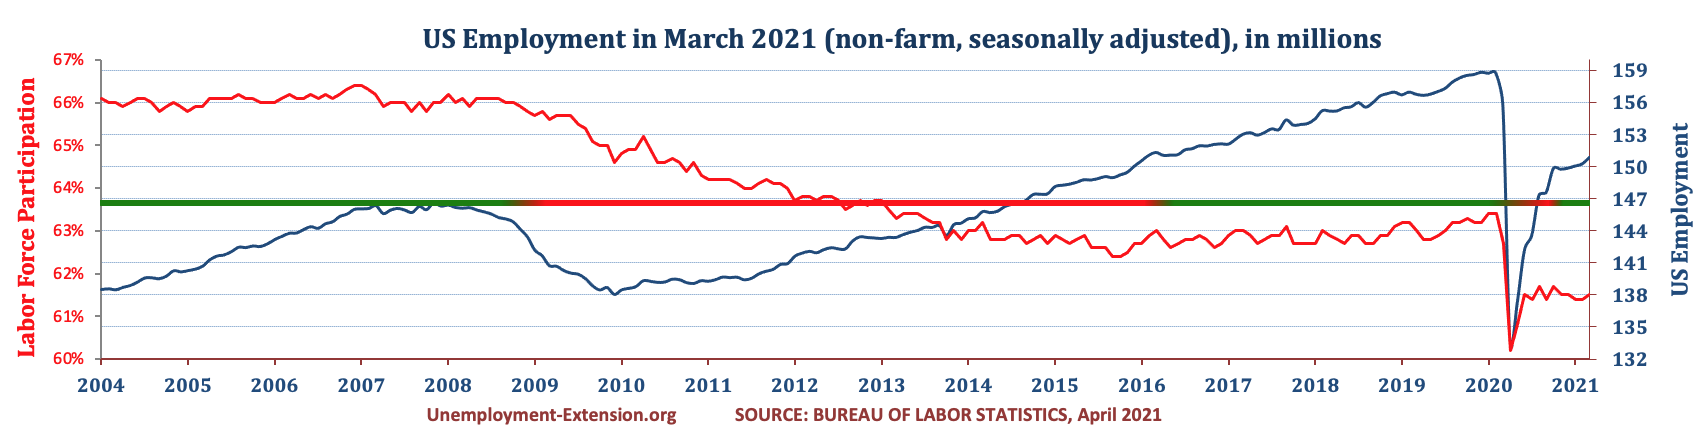 Total US Employment (non-farm, seasonally adjusted) in March 2021. US economy has lost approximately 10 million jobs in comparison to pre-resession level.